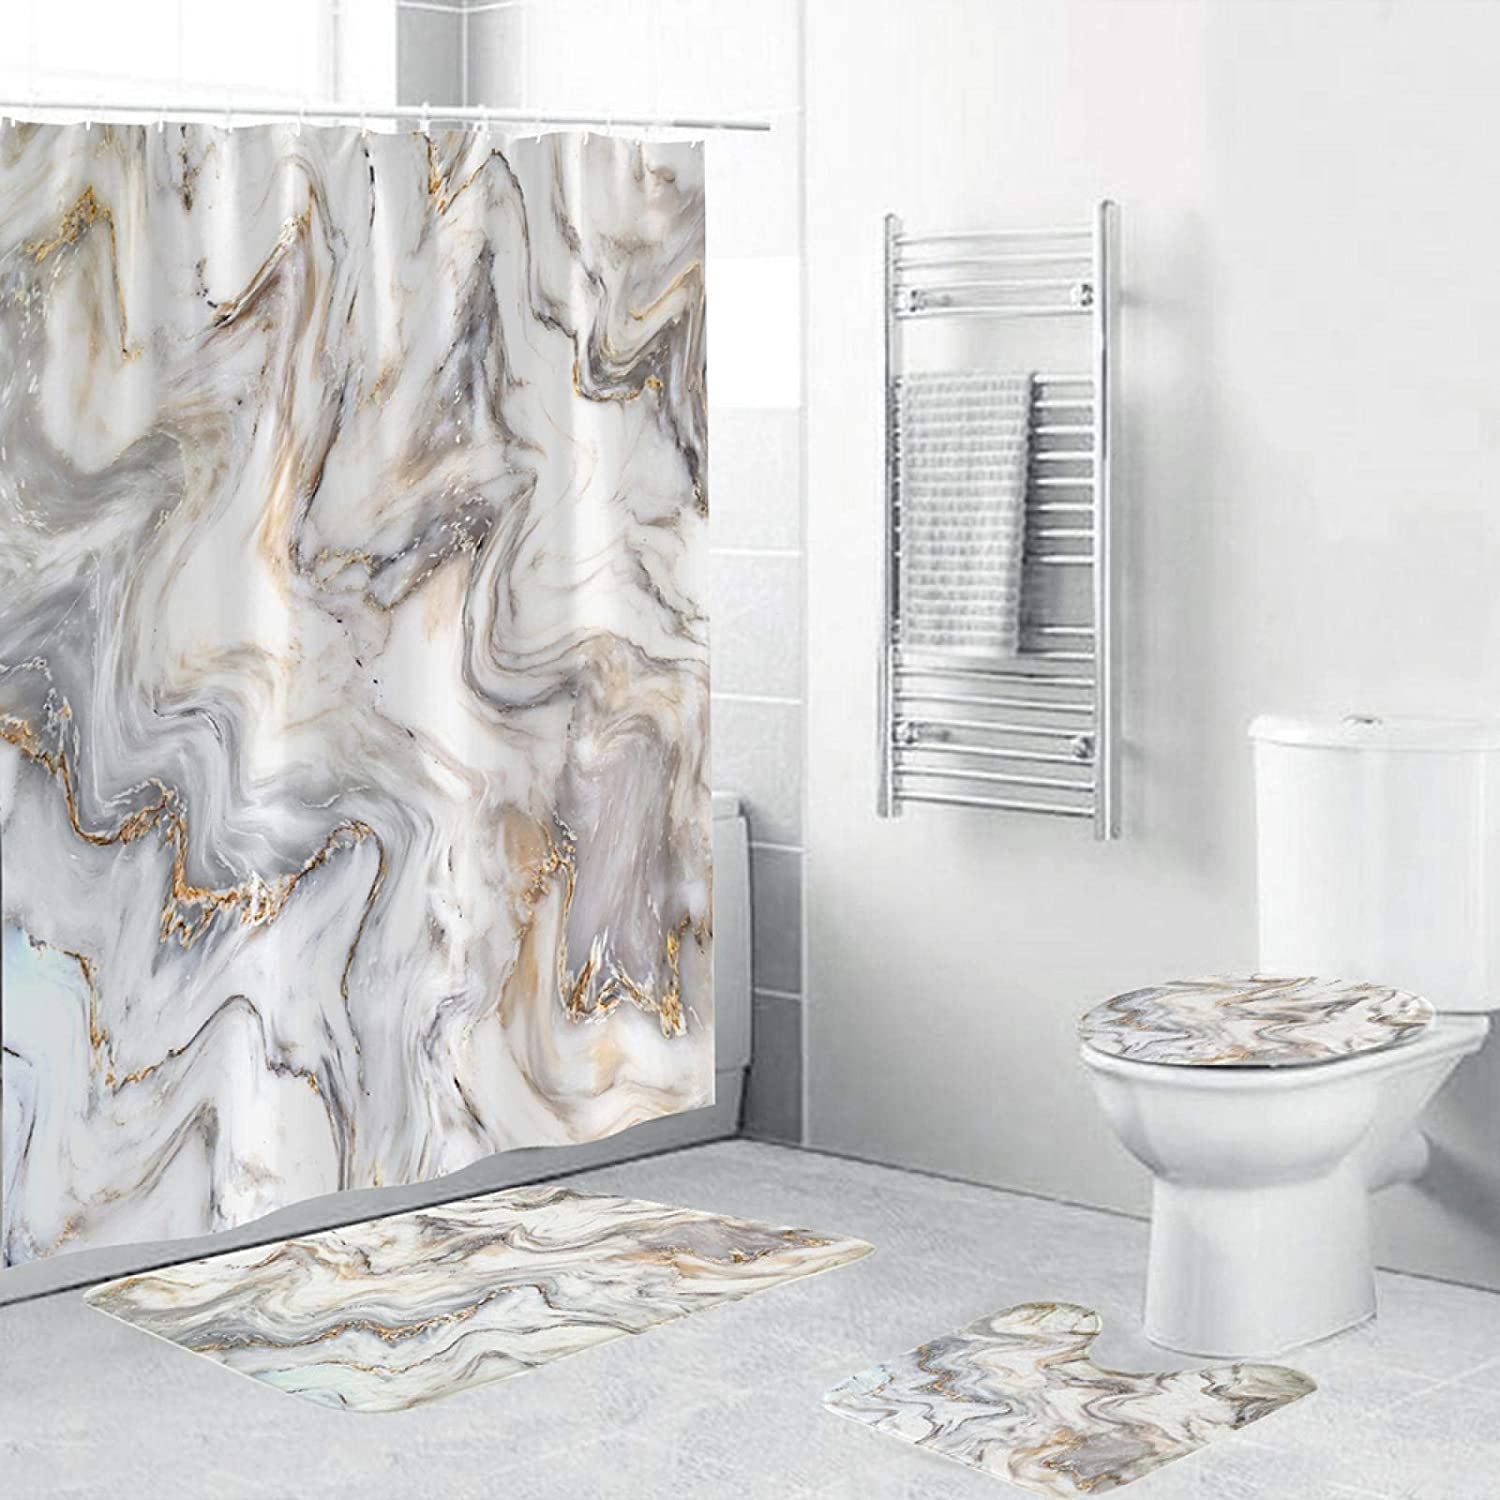 ZHEXI Marble Quality All items in the store inspection Bathroom Shower Curtain Bath Waterproof Carpet Set